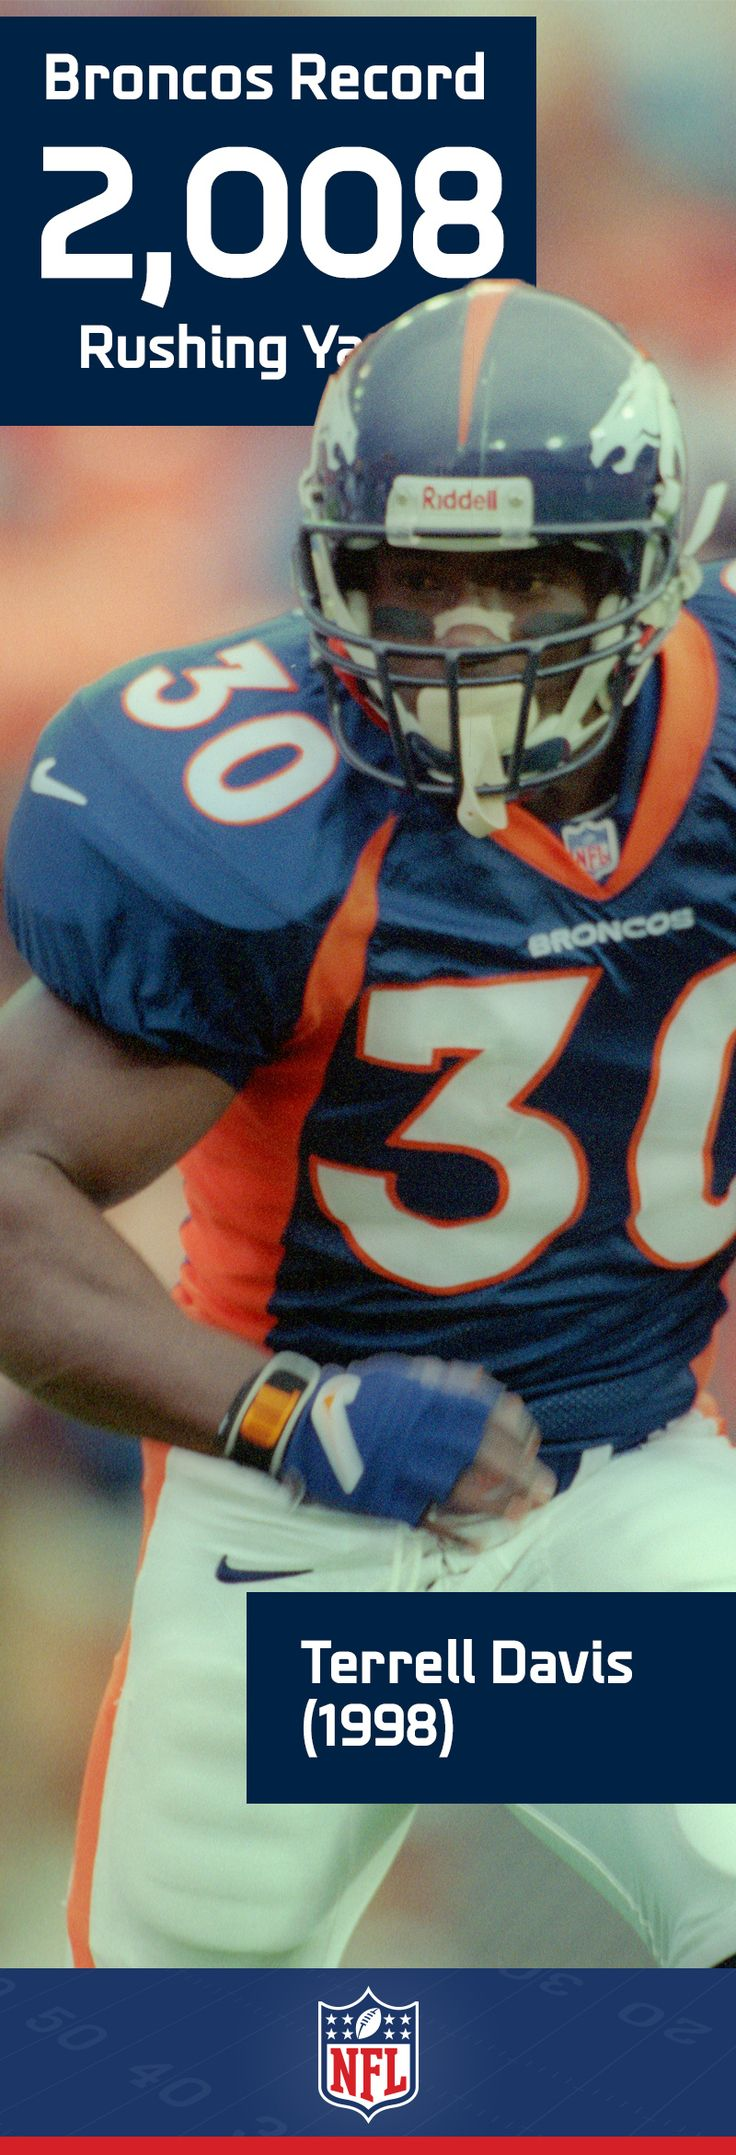 Terrell Davis is more than the Broncos' single-season rushing record holder, he's also number one in Denver history with 7,607 career yards. All this milage helped TD bring the Broncos to back to back Super Bowl championships.